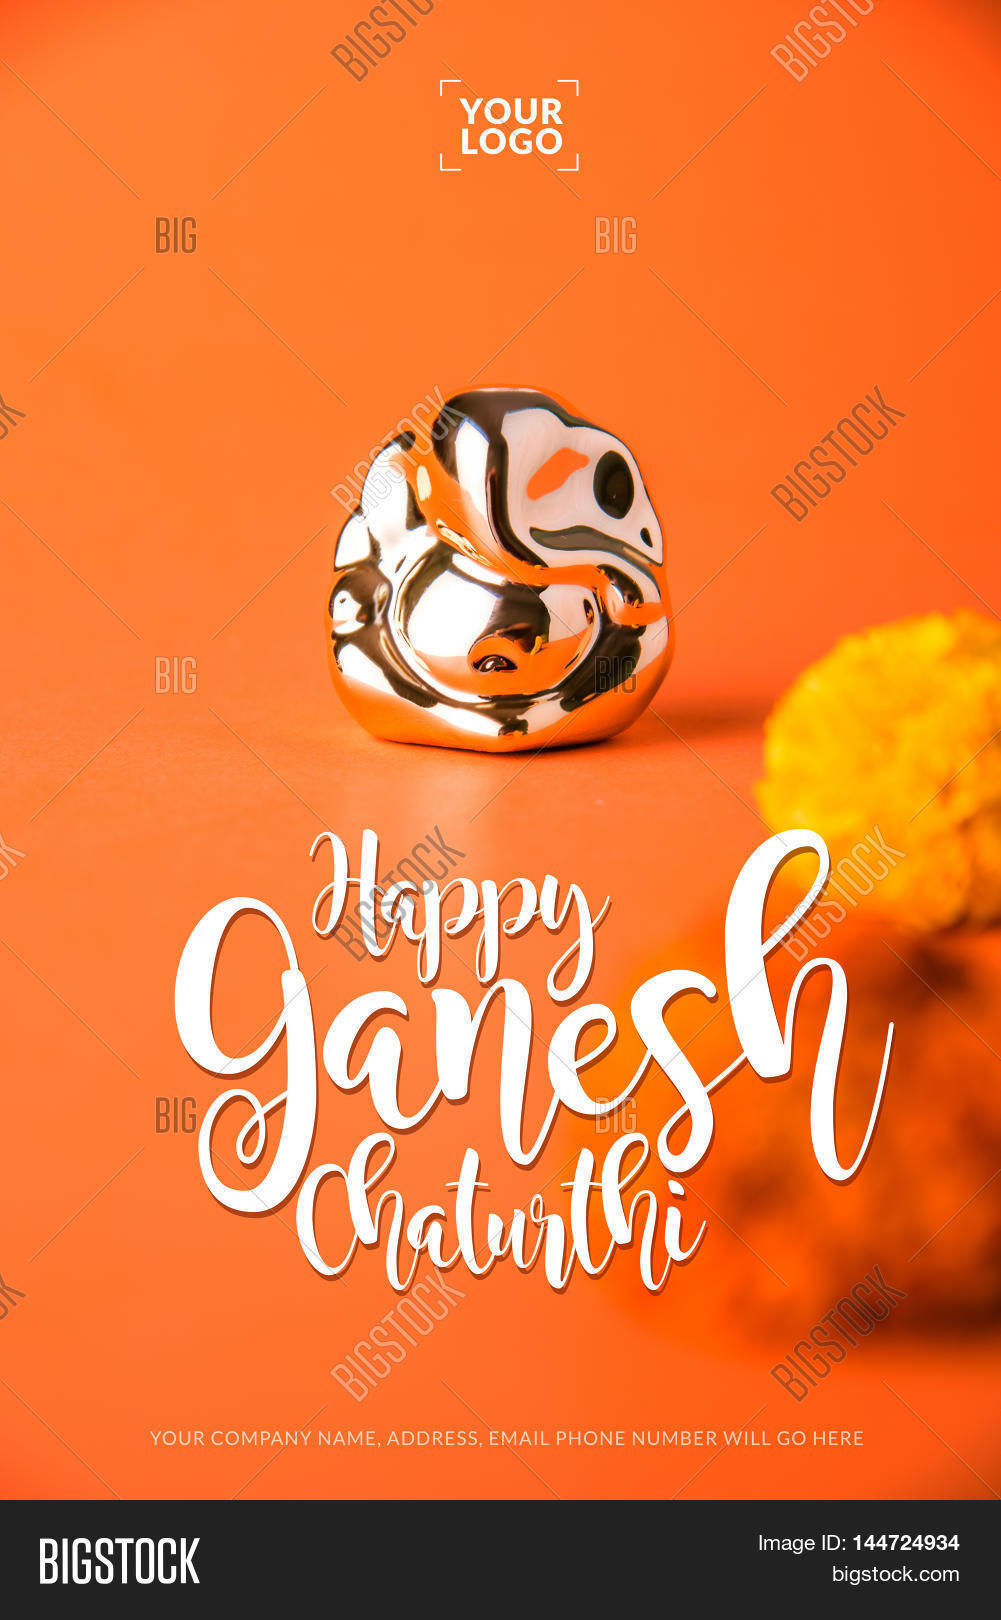 Happy ganesh chaturthi image photo free trial bigstock happy ganesh chaturthi greeting card showing photograph of lord ganesha idol m4hsunfo